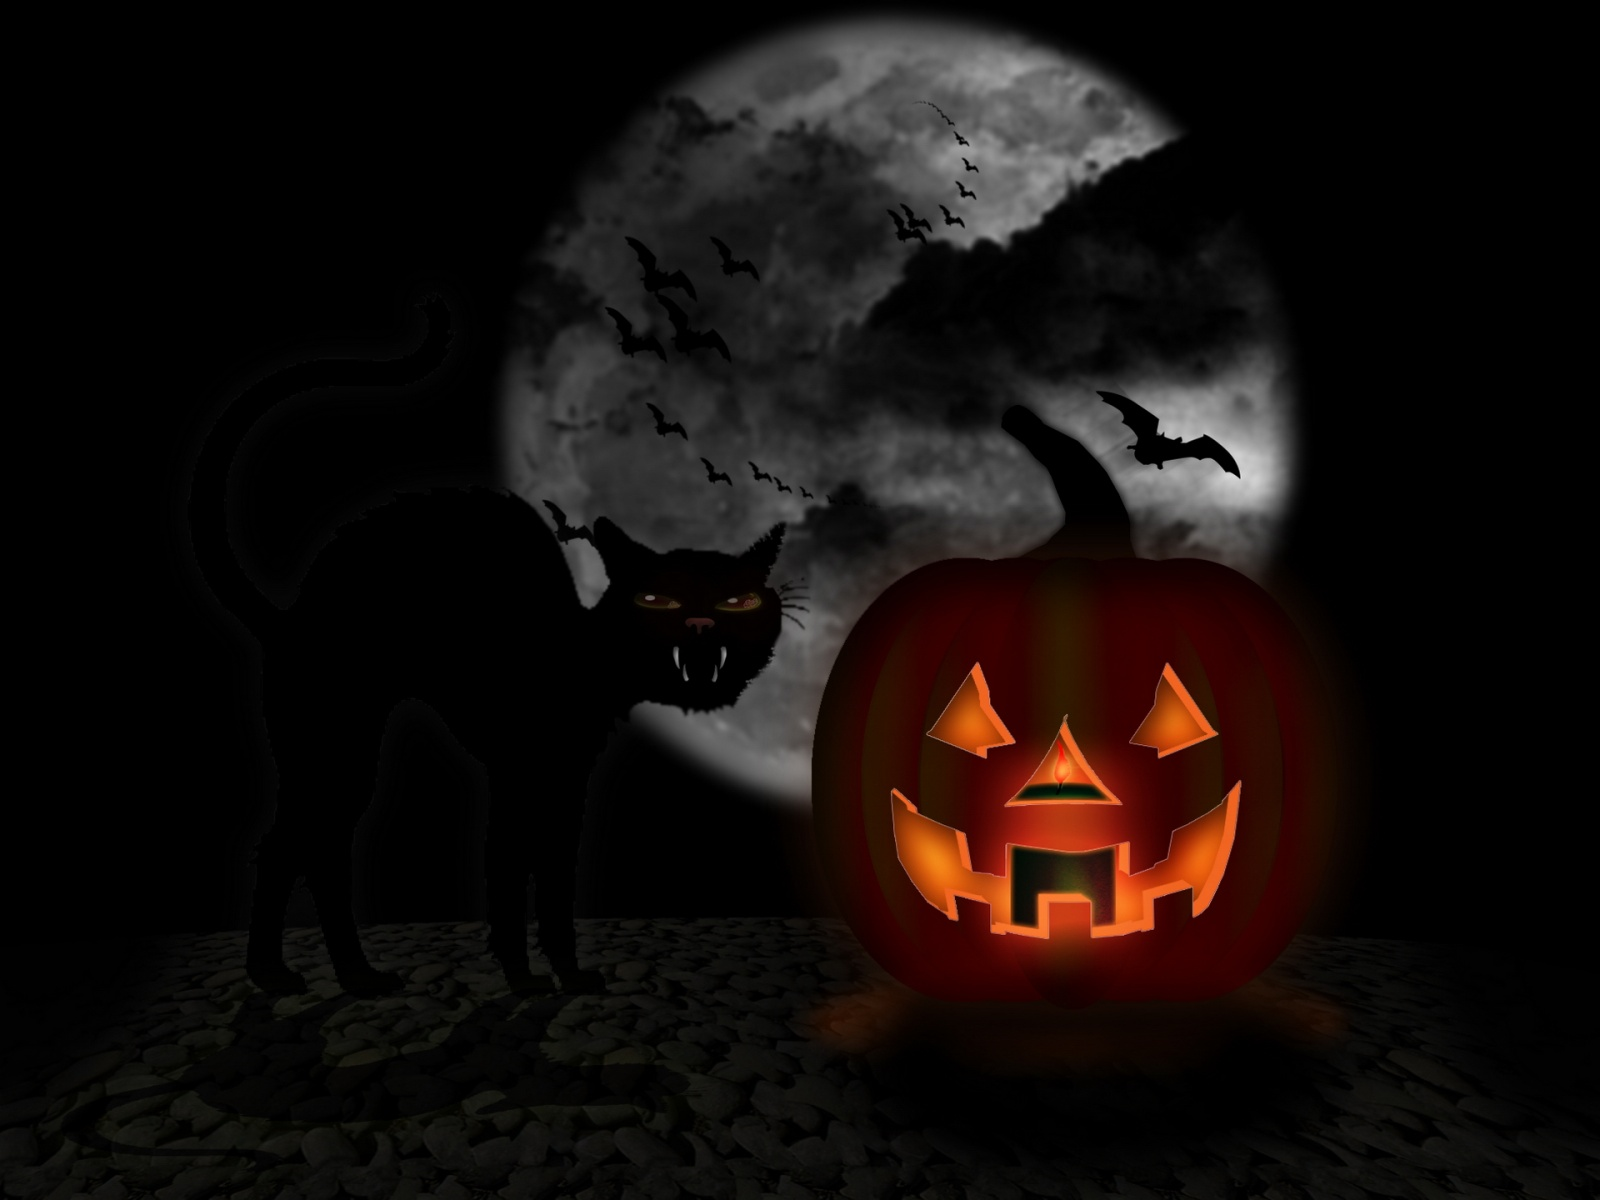 Horror Animated Wallpaper Free Download For Pc: Cute Photography Love: Halloween Wallpaper